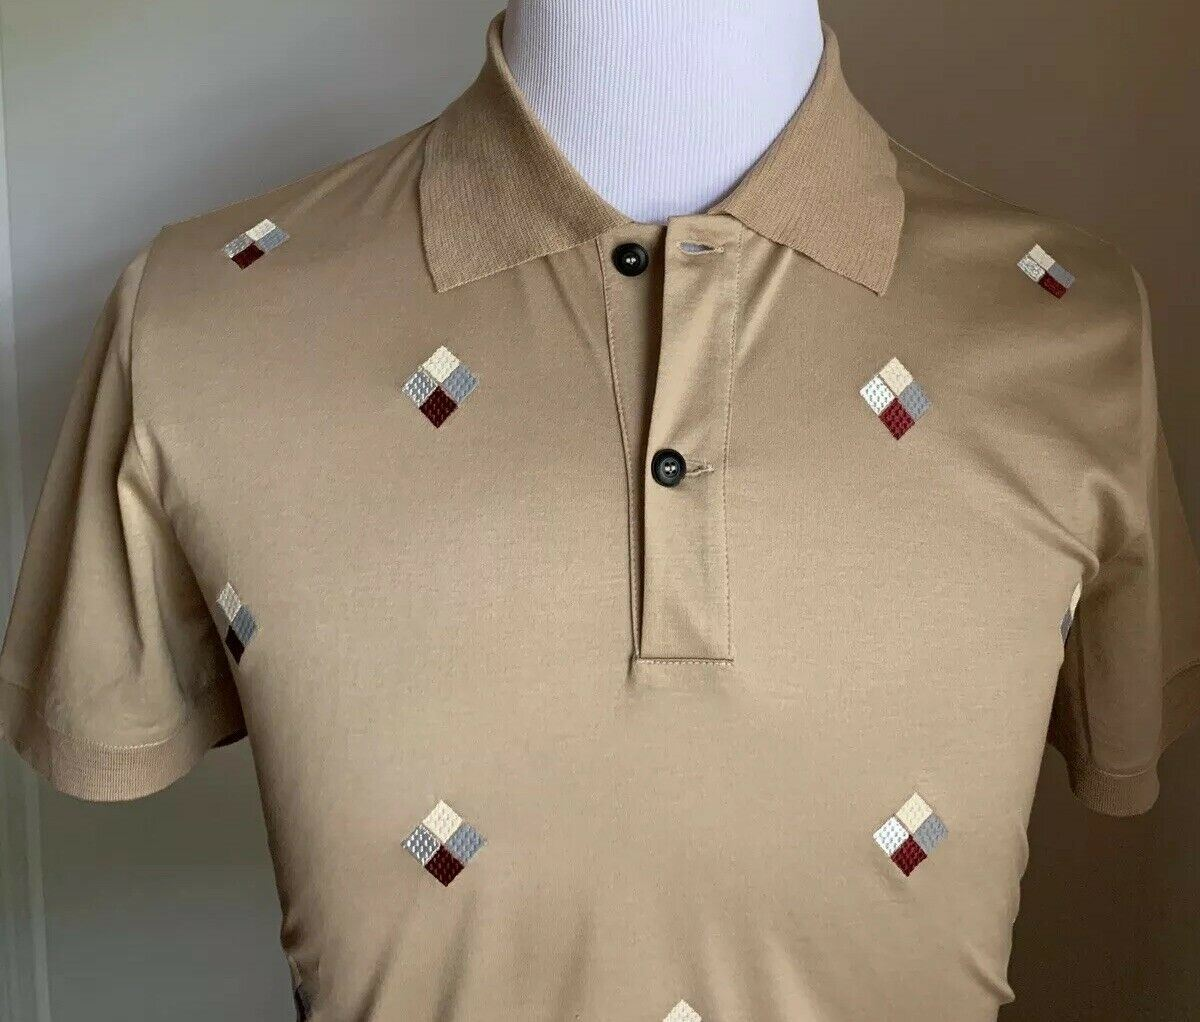 NWT $945 Giorgio Armani Mens Polo Shirt LT Brown L US ( 52 Eu ) Italy